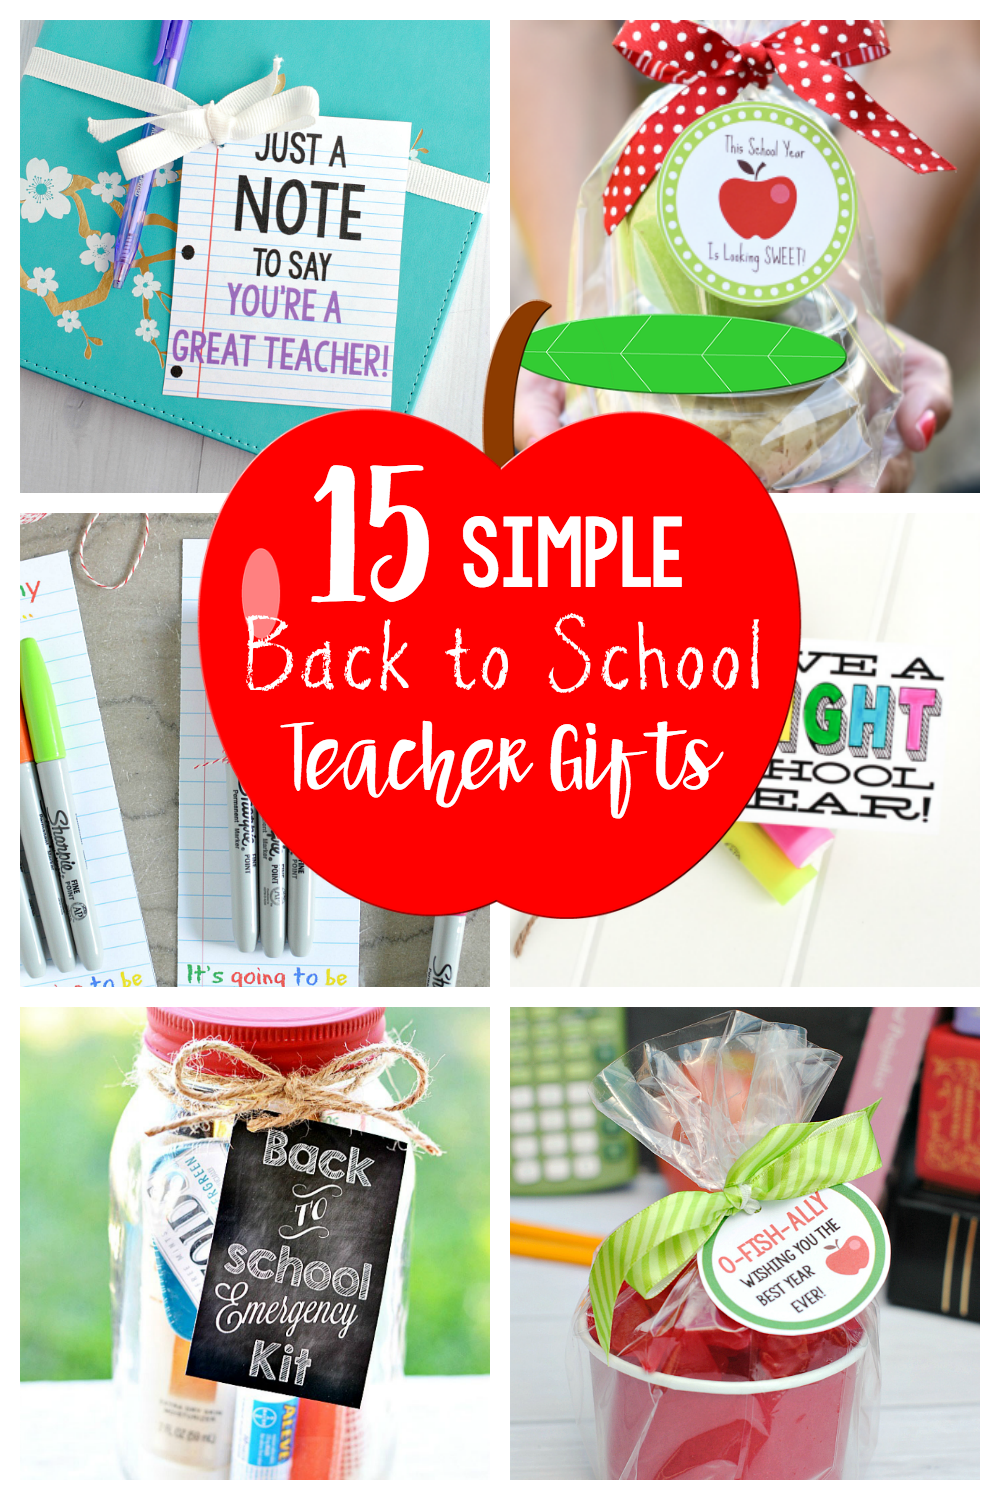 15 Cute and Simple Back to School Teacher Gifts to say hello to the new teacher on the first day of school. #backtoschool